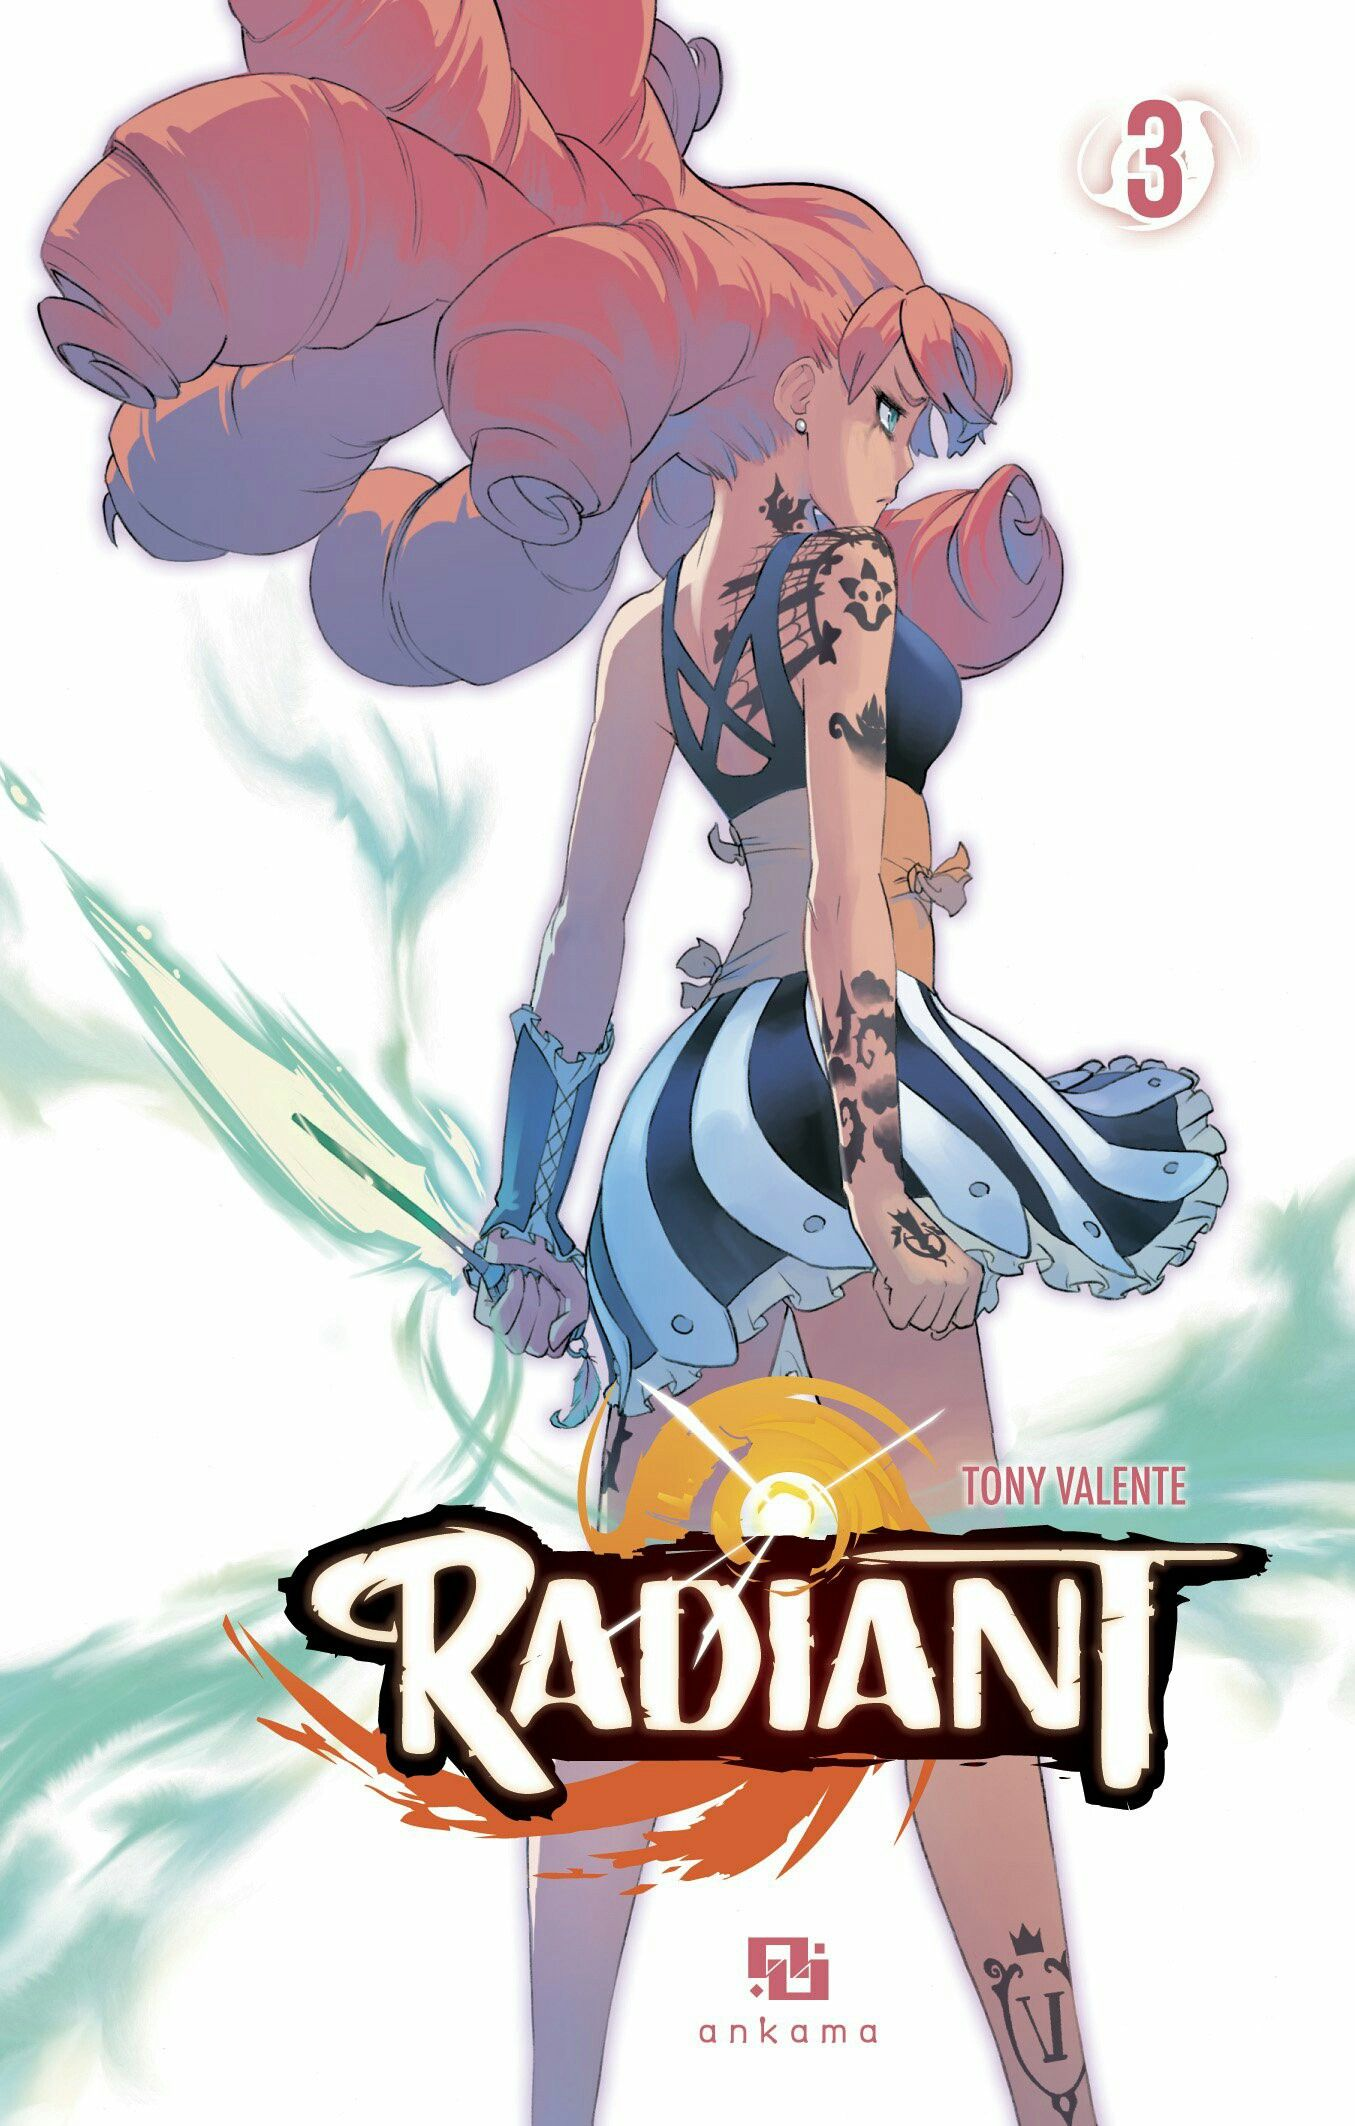 Radiant 3 Tony Valente Anime